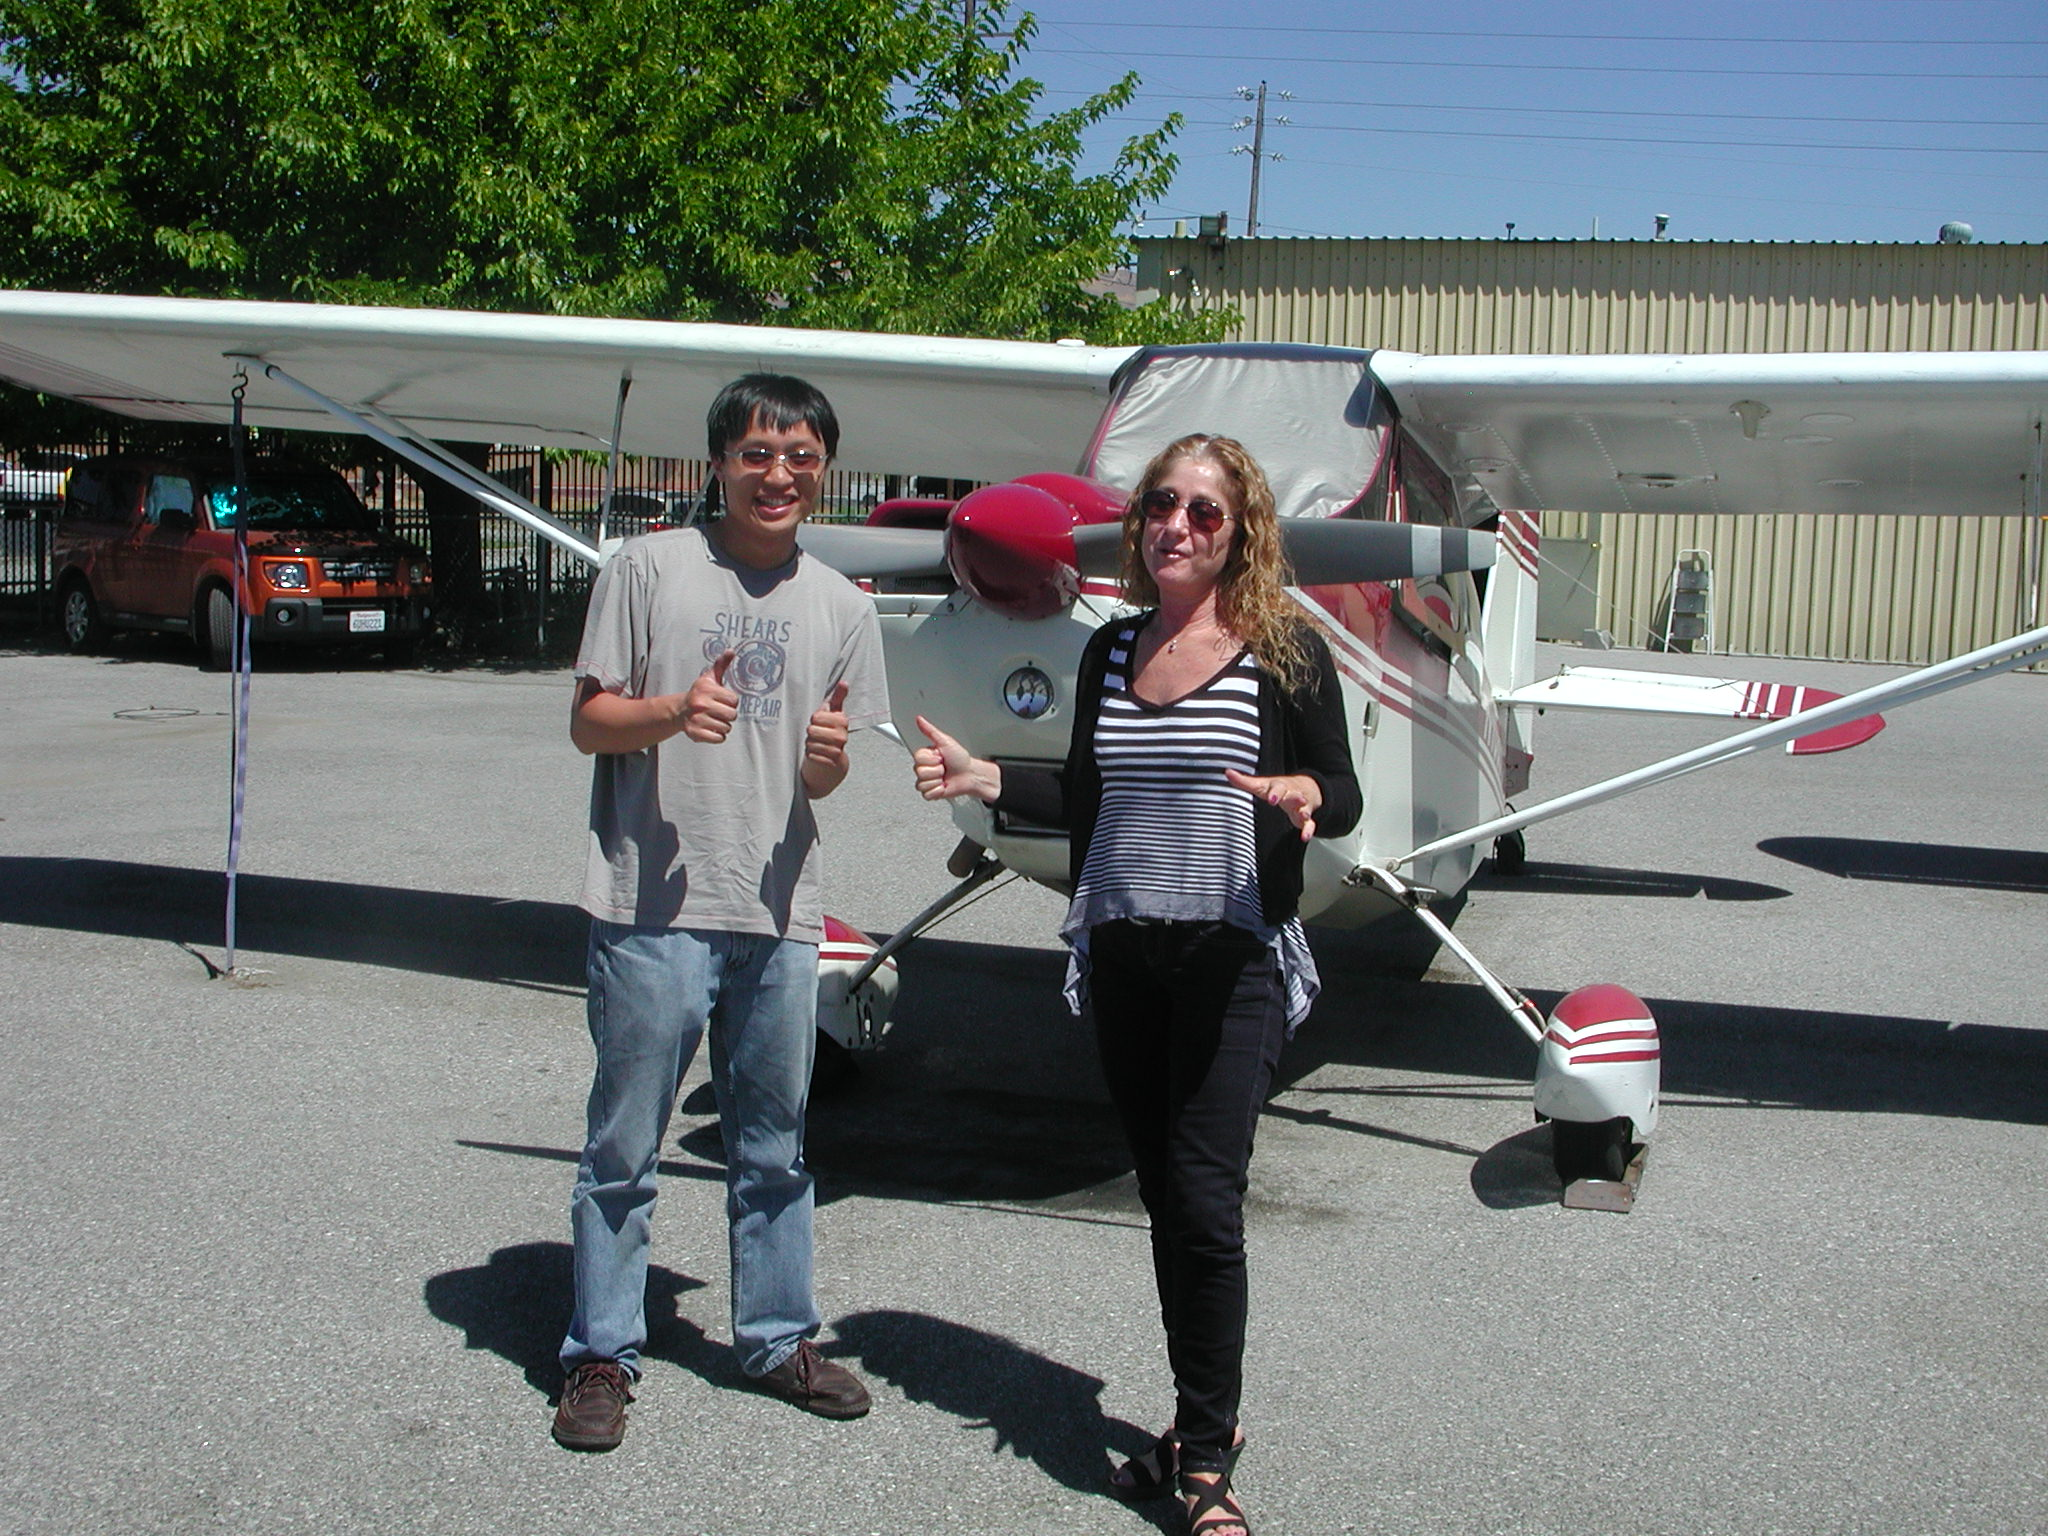 Matthew Lai passes private pilot checkride at AeroDynamic Aviation located at Reid Hillview Airport in San Jose, CA.